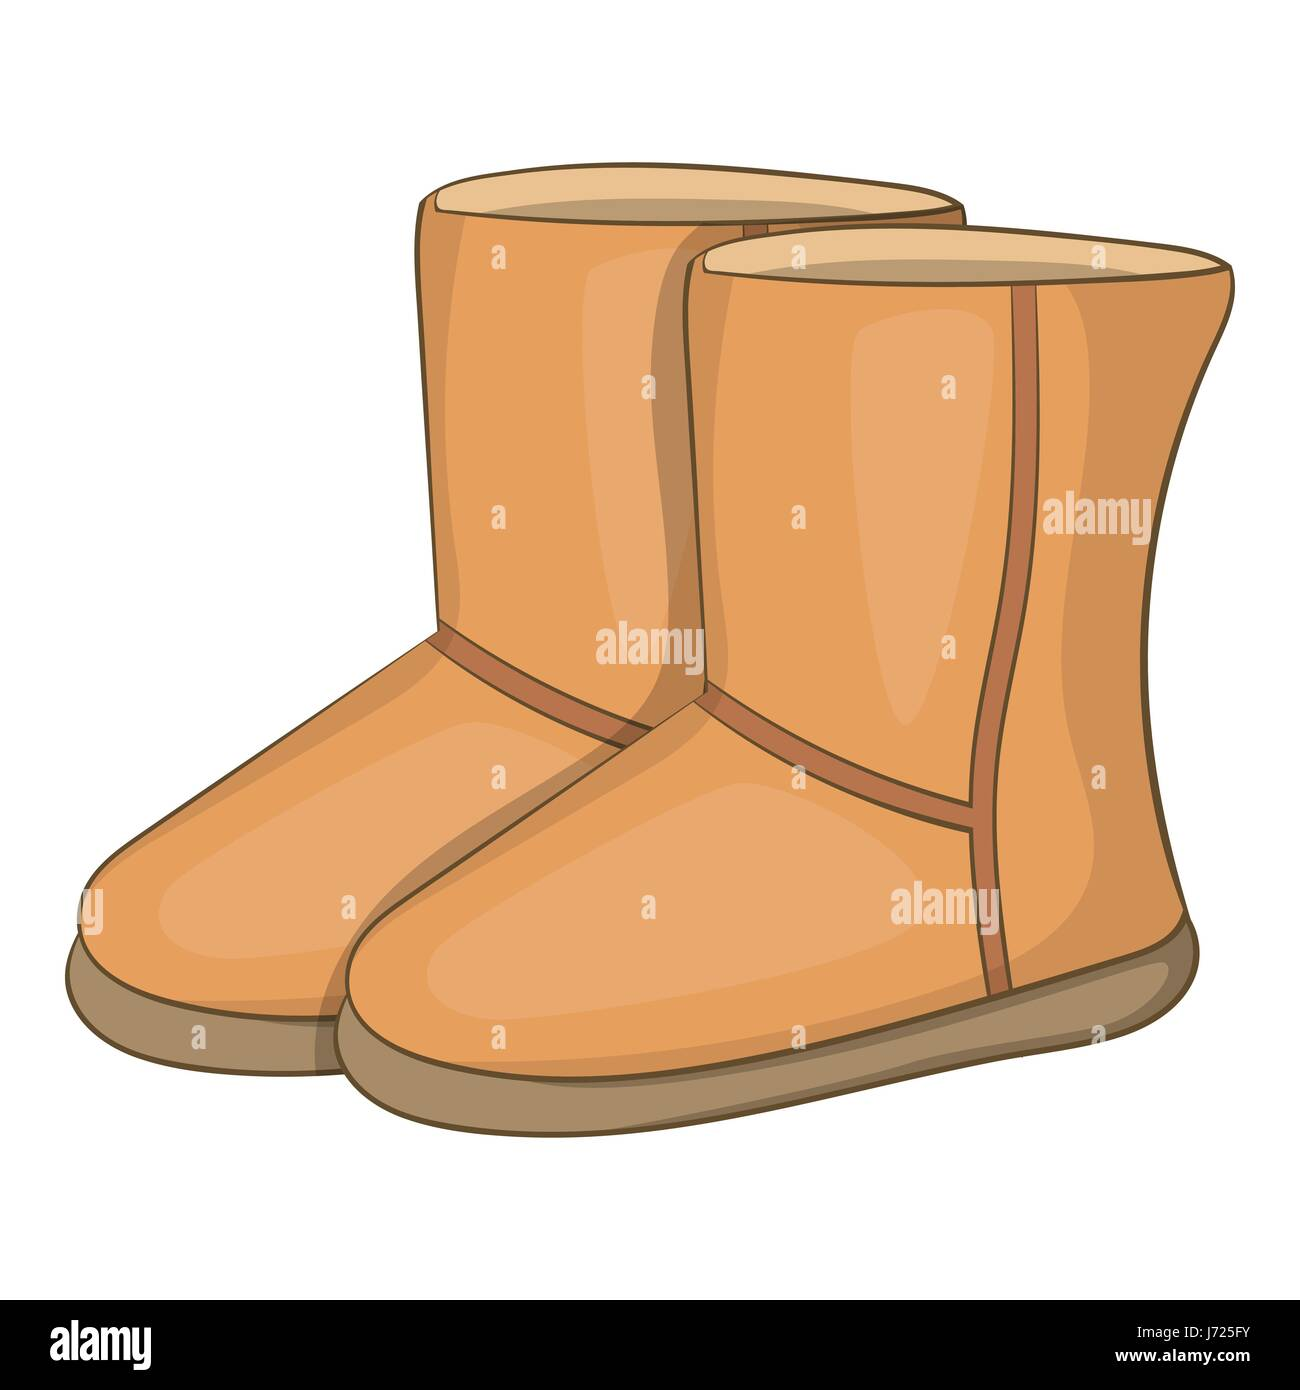 242acbfd1c Winter ugg boots icon, cartoon style Stock Vector Art & Illustration ...